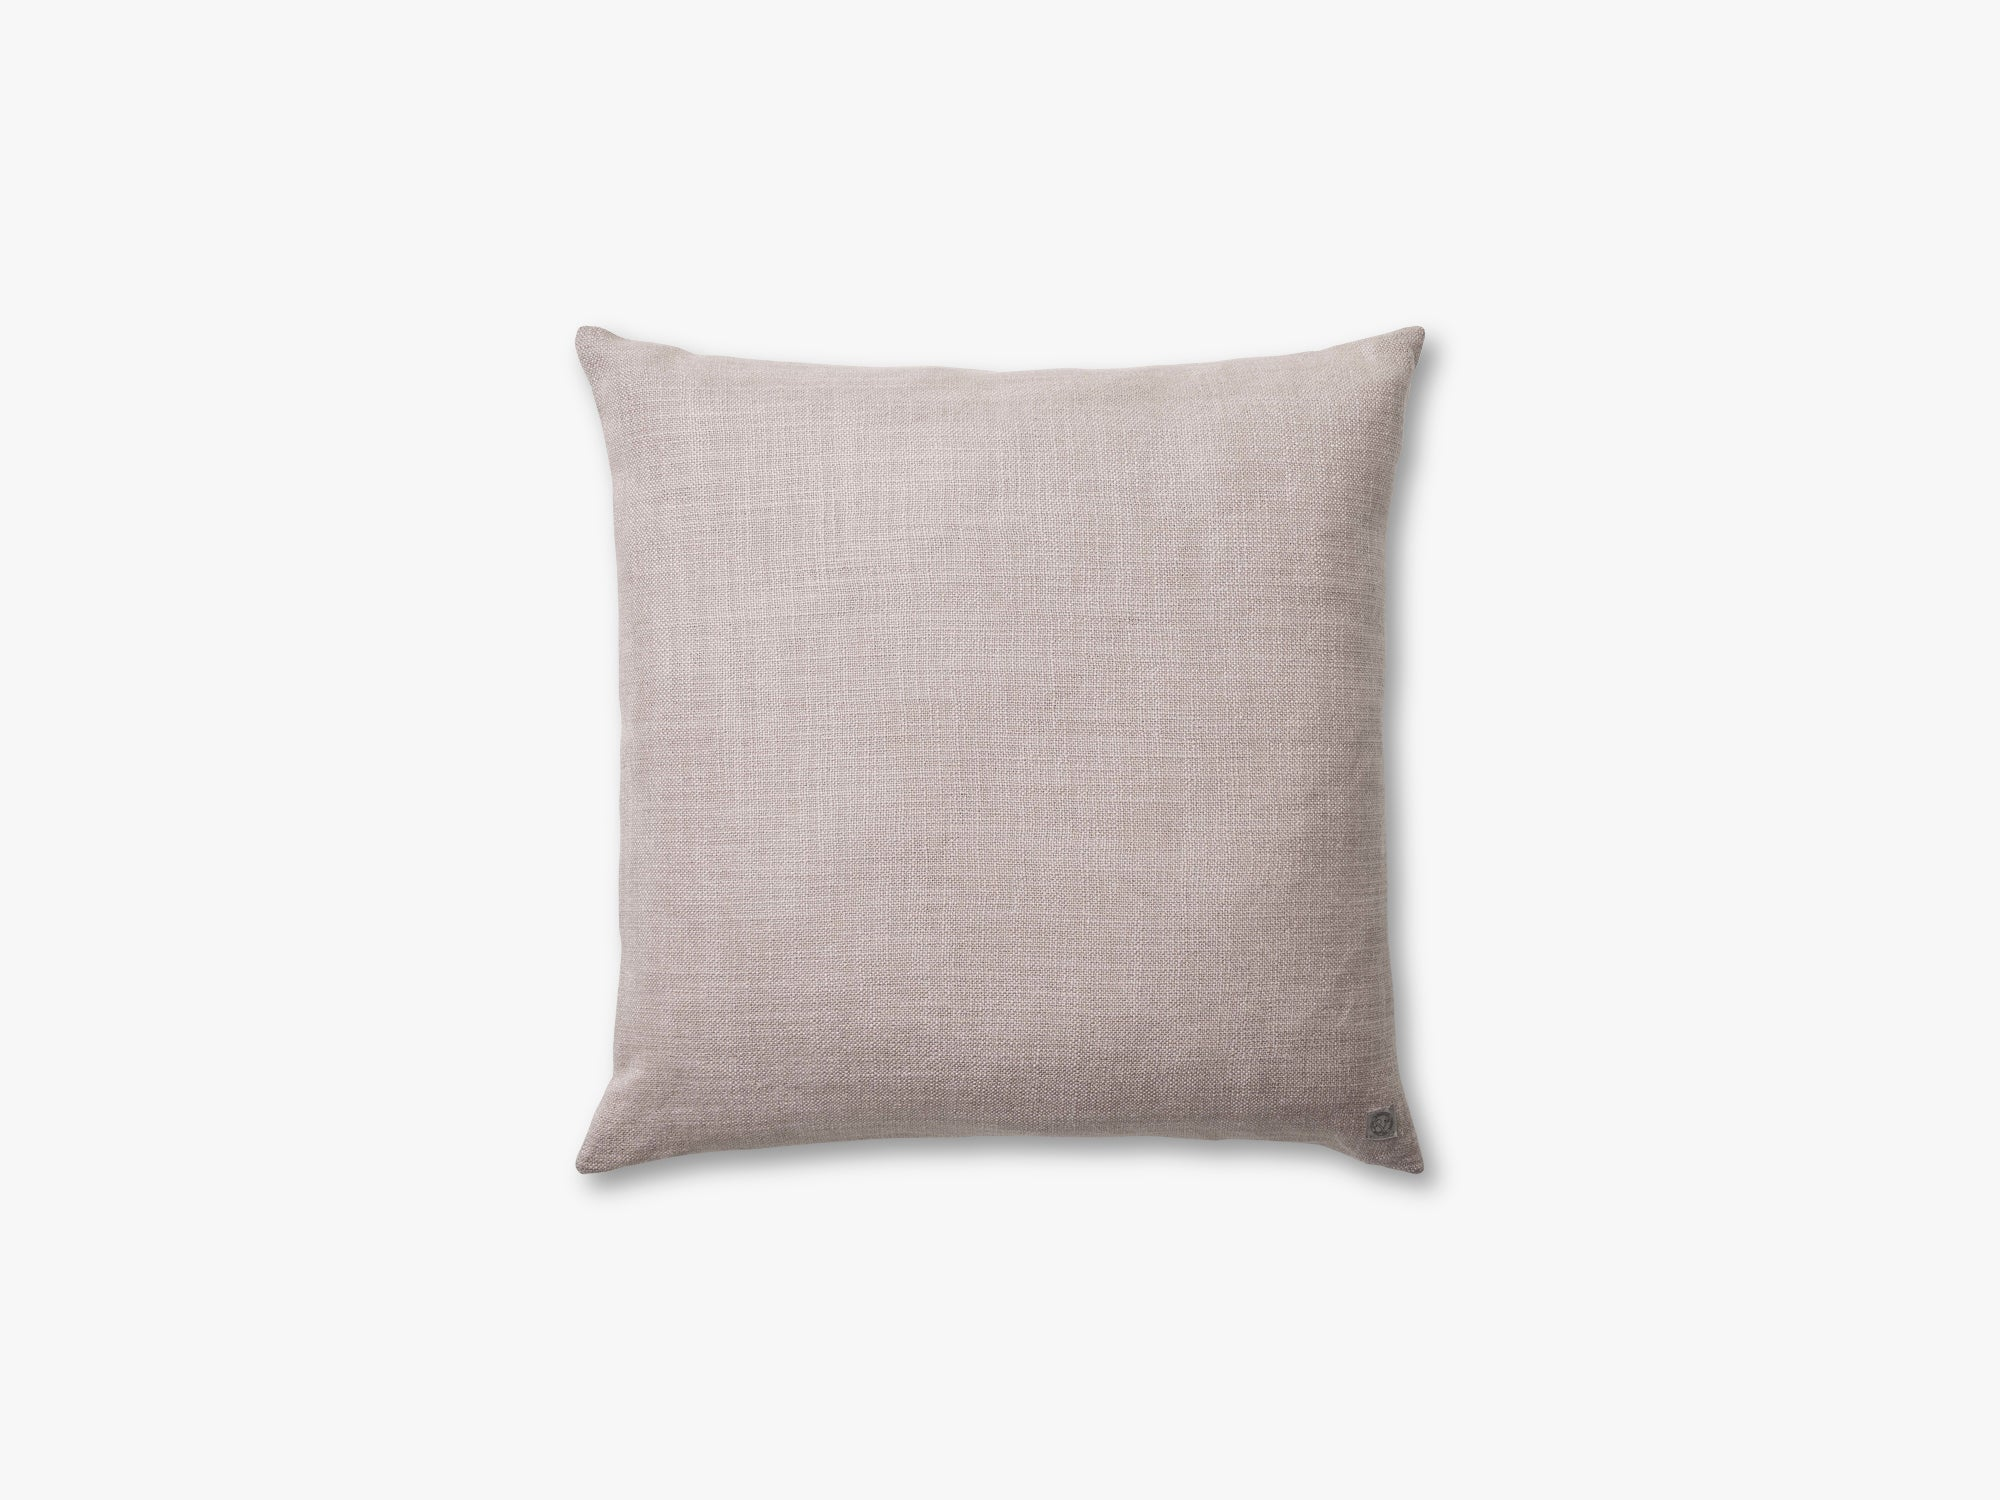 Collect Cushion SC29 - 65x65, Powder/Heavy Linen fra &tradition